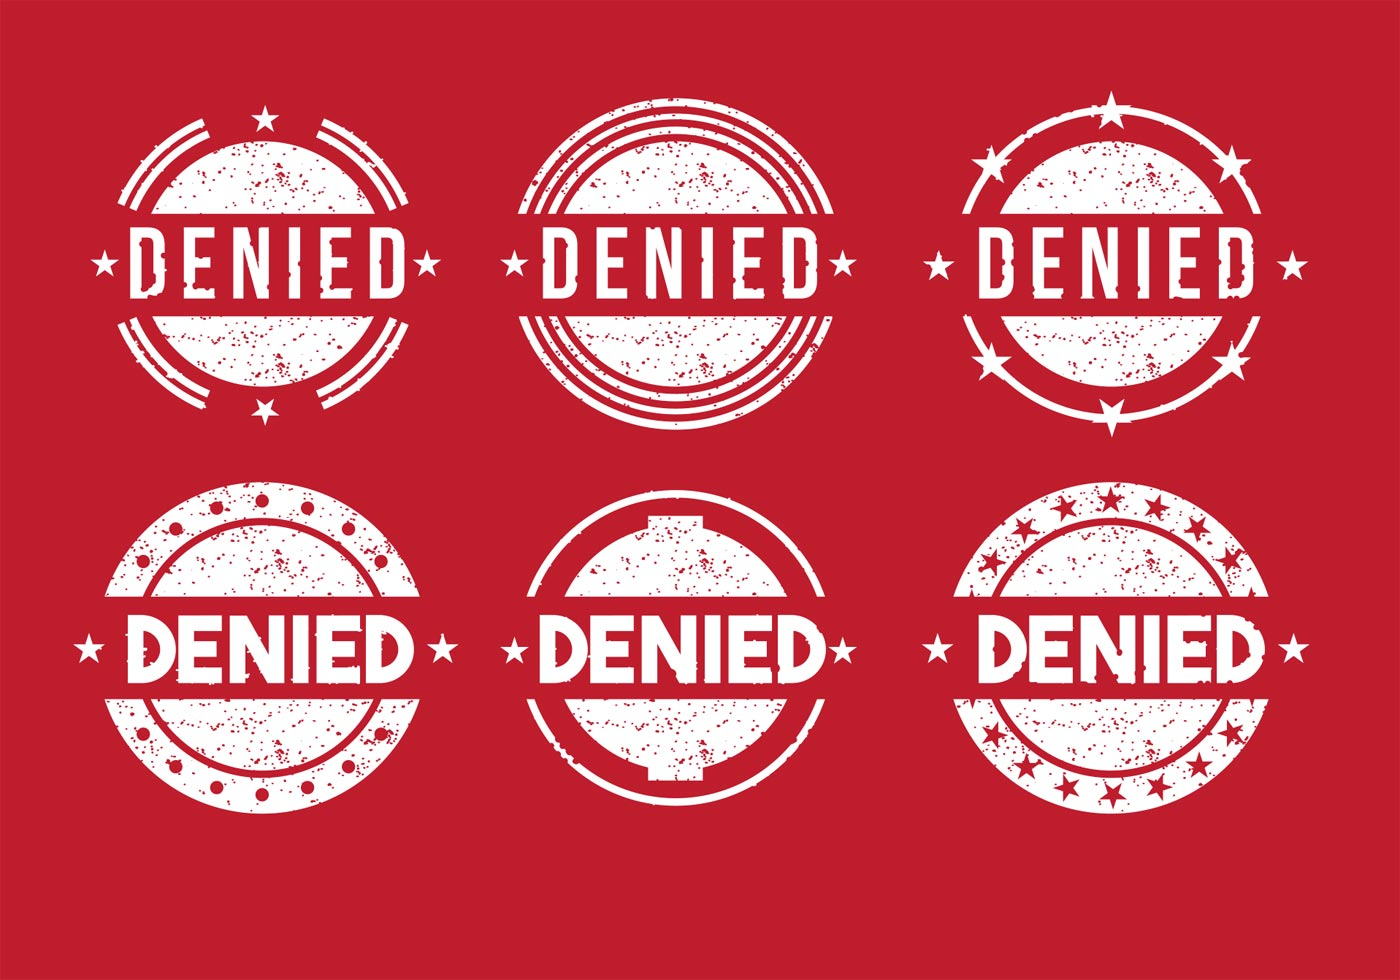 Denied Stamp Vectors Download Free Vector Art Stock